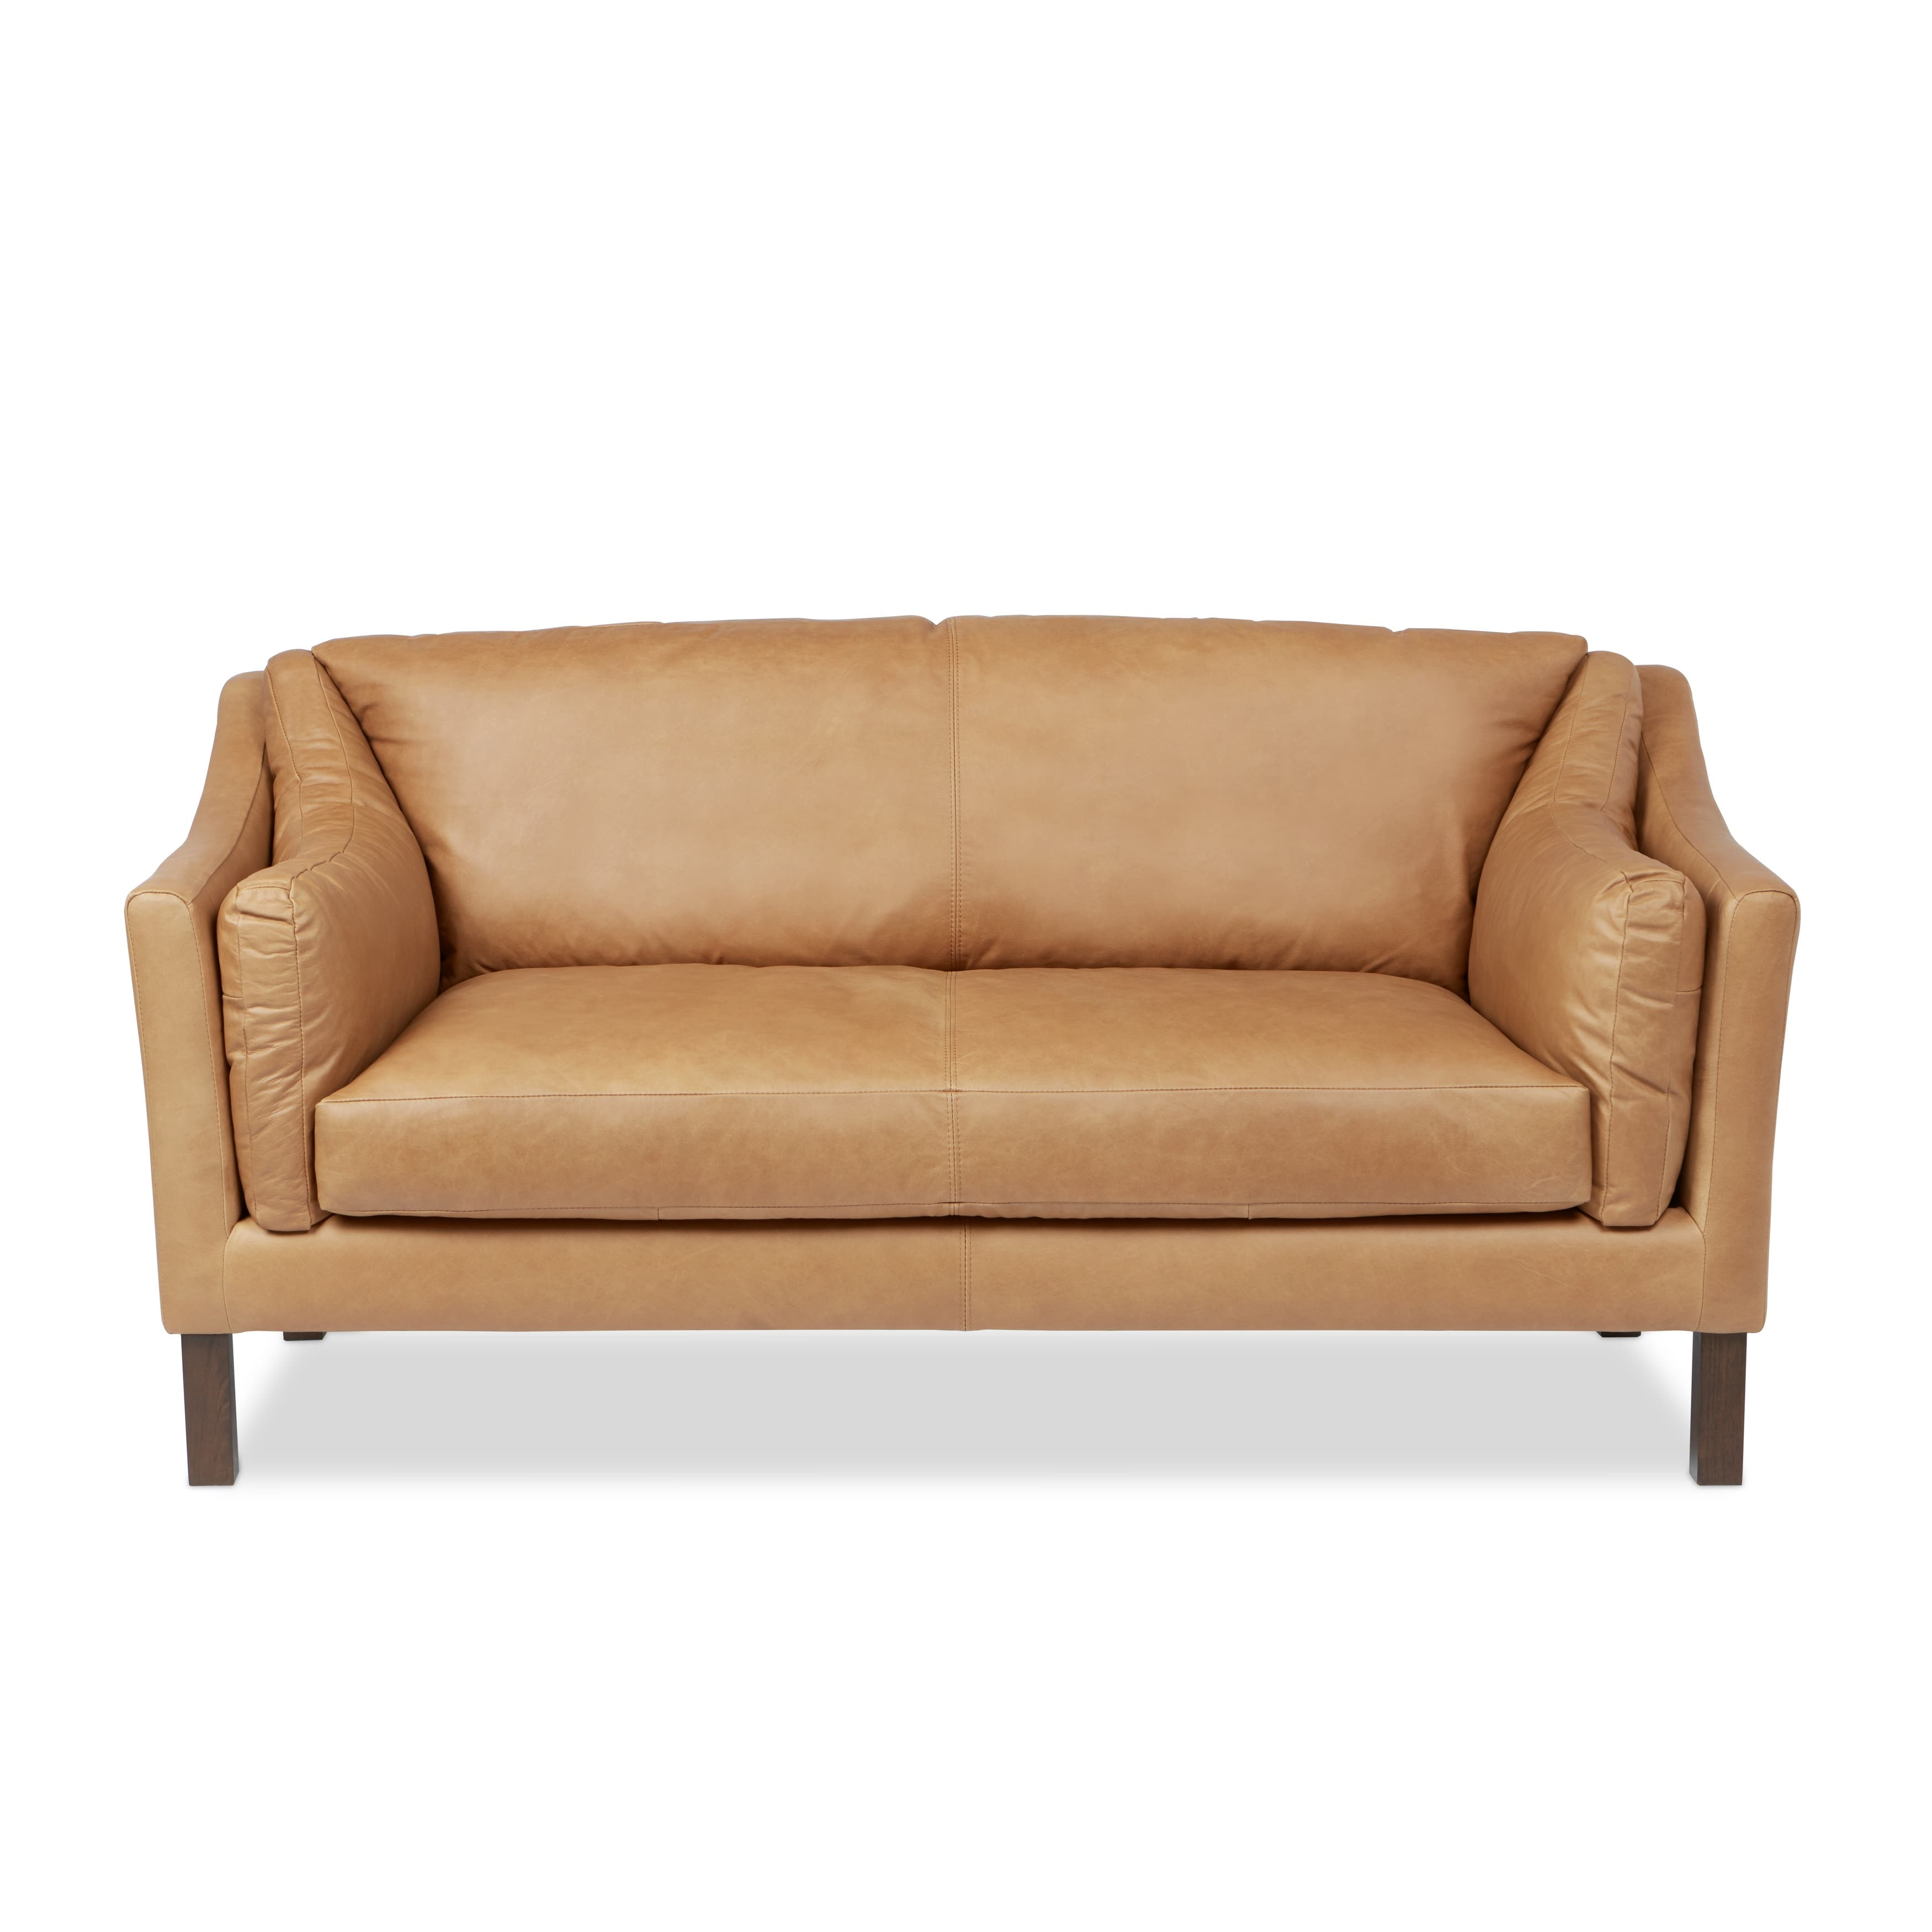 Gracewood Hollow Reginald Charme Russet Leather Sofa